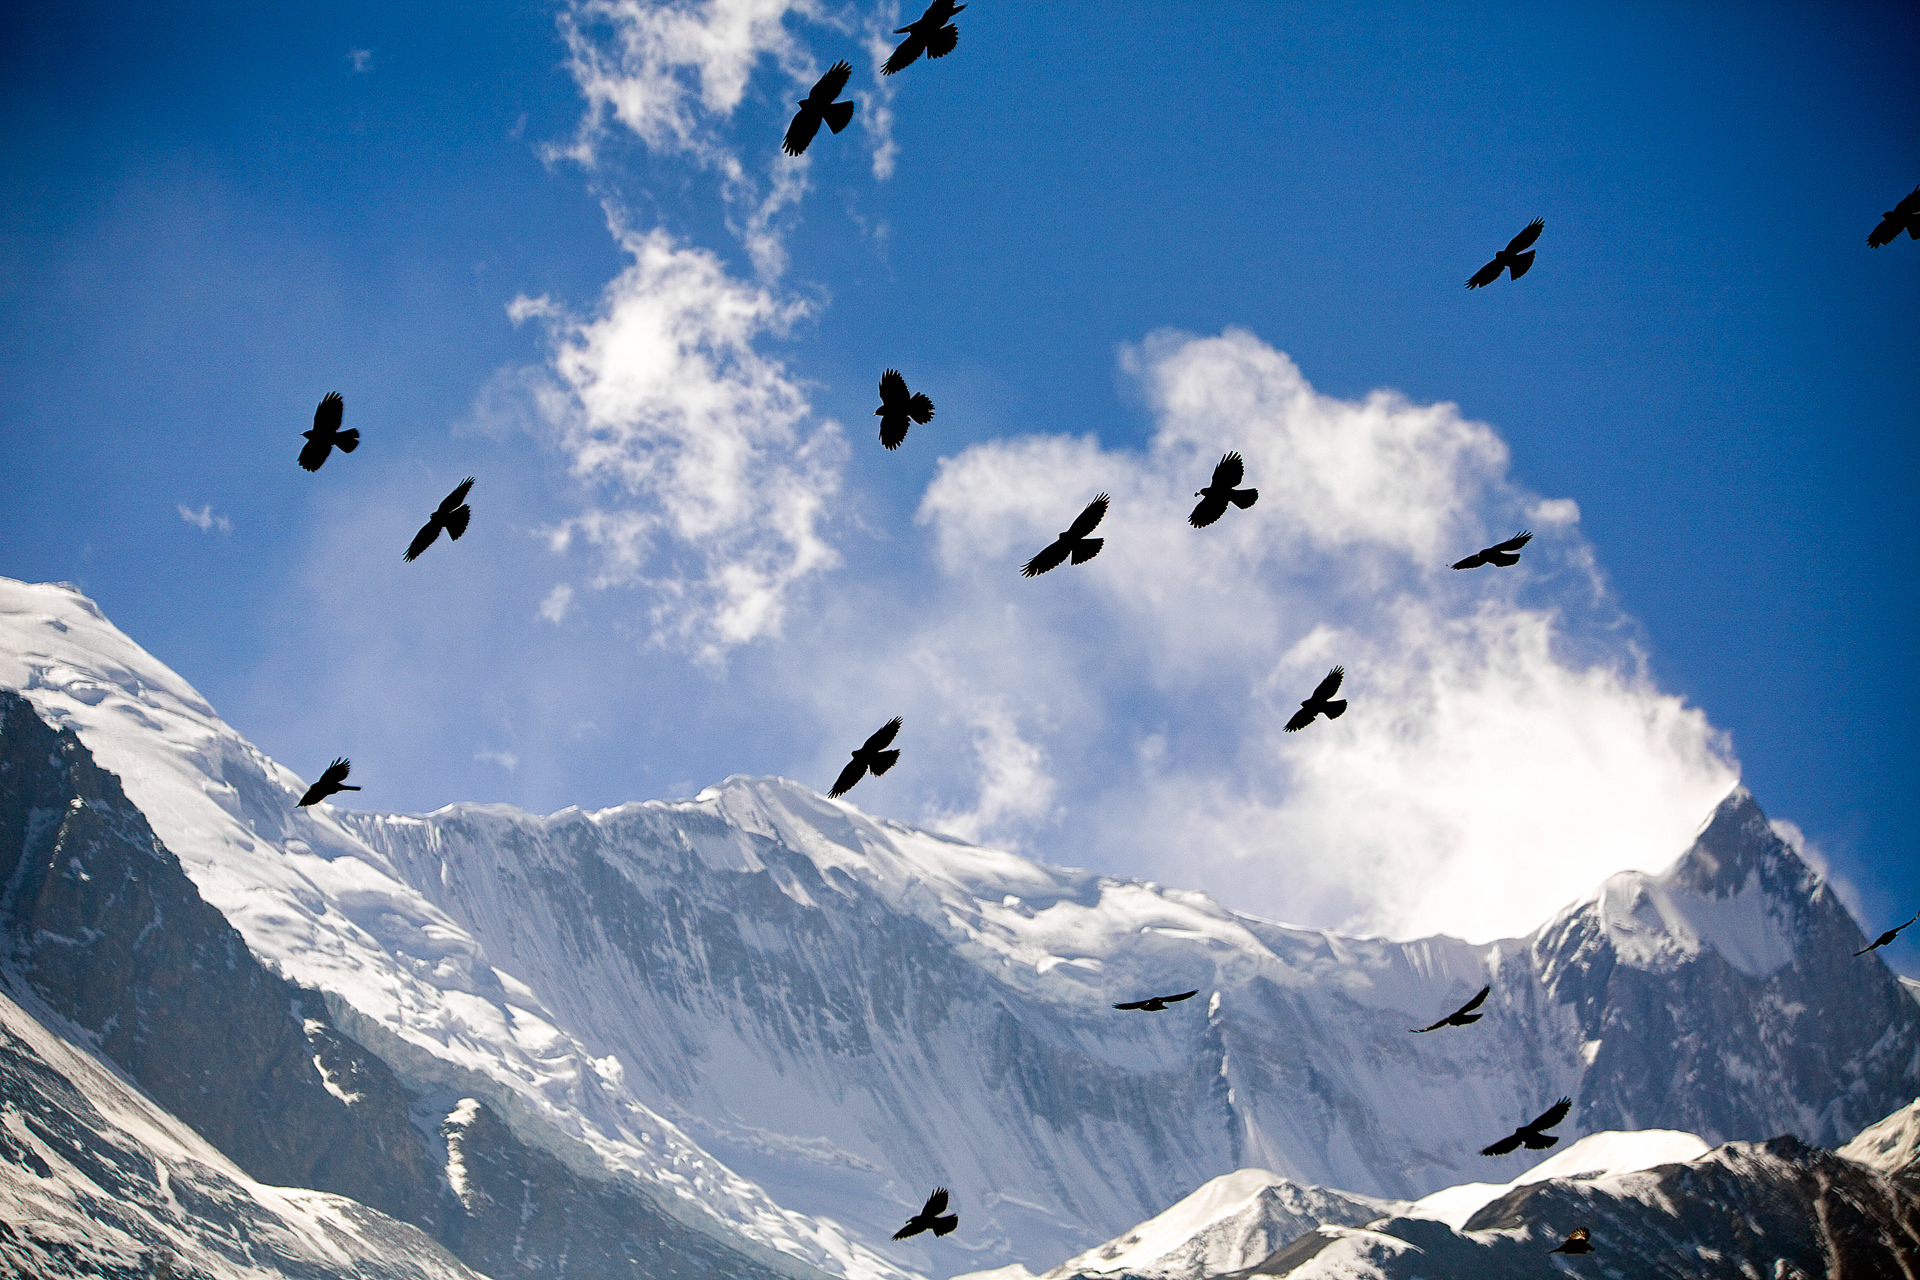 Crows soar in front of Kangshar Kang in the Annapurna mountains.